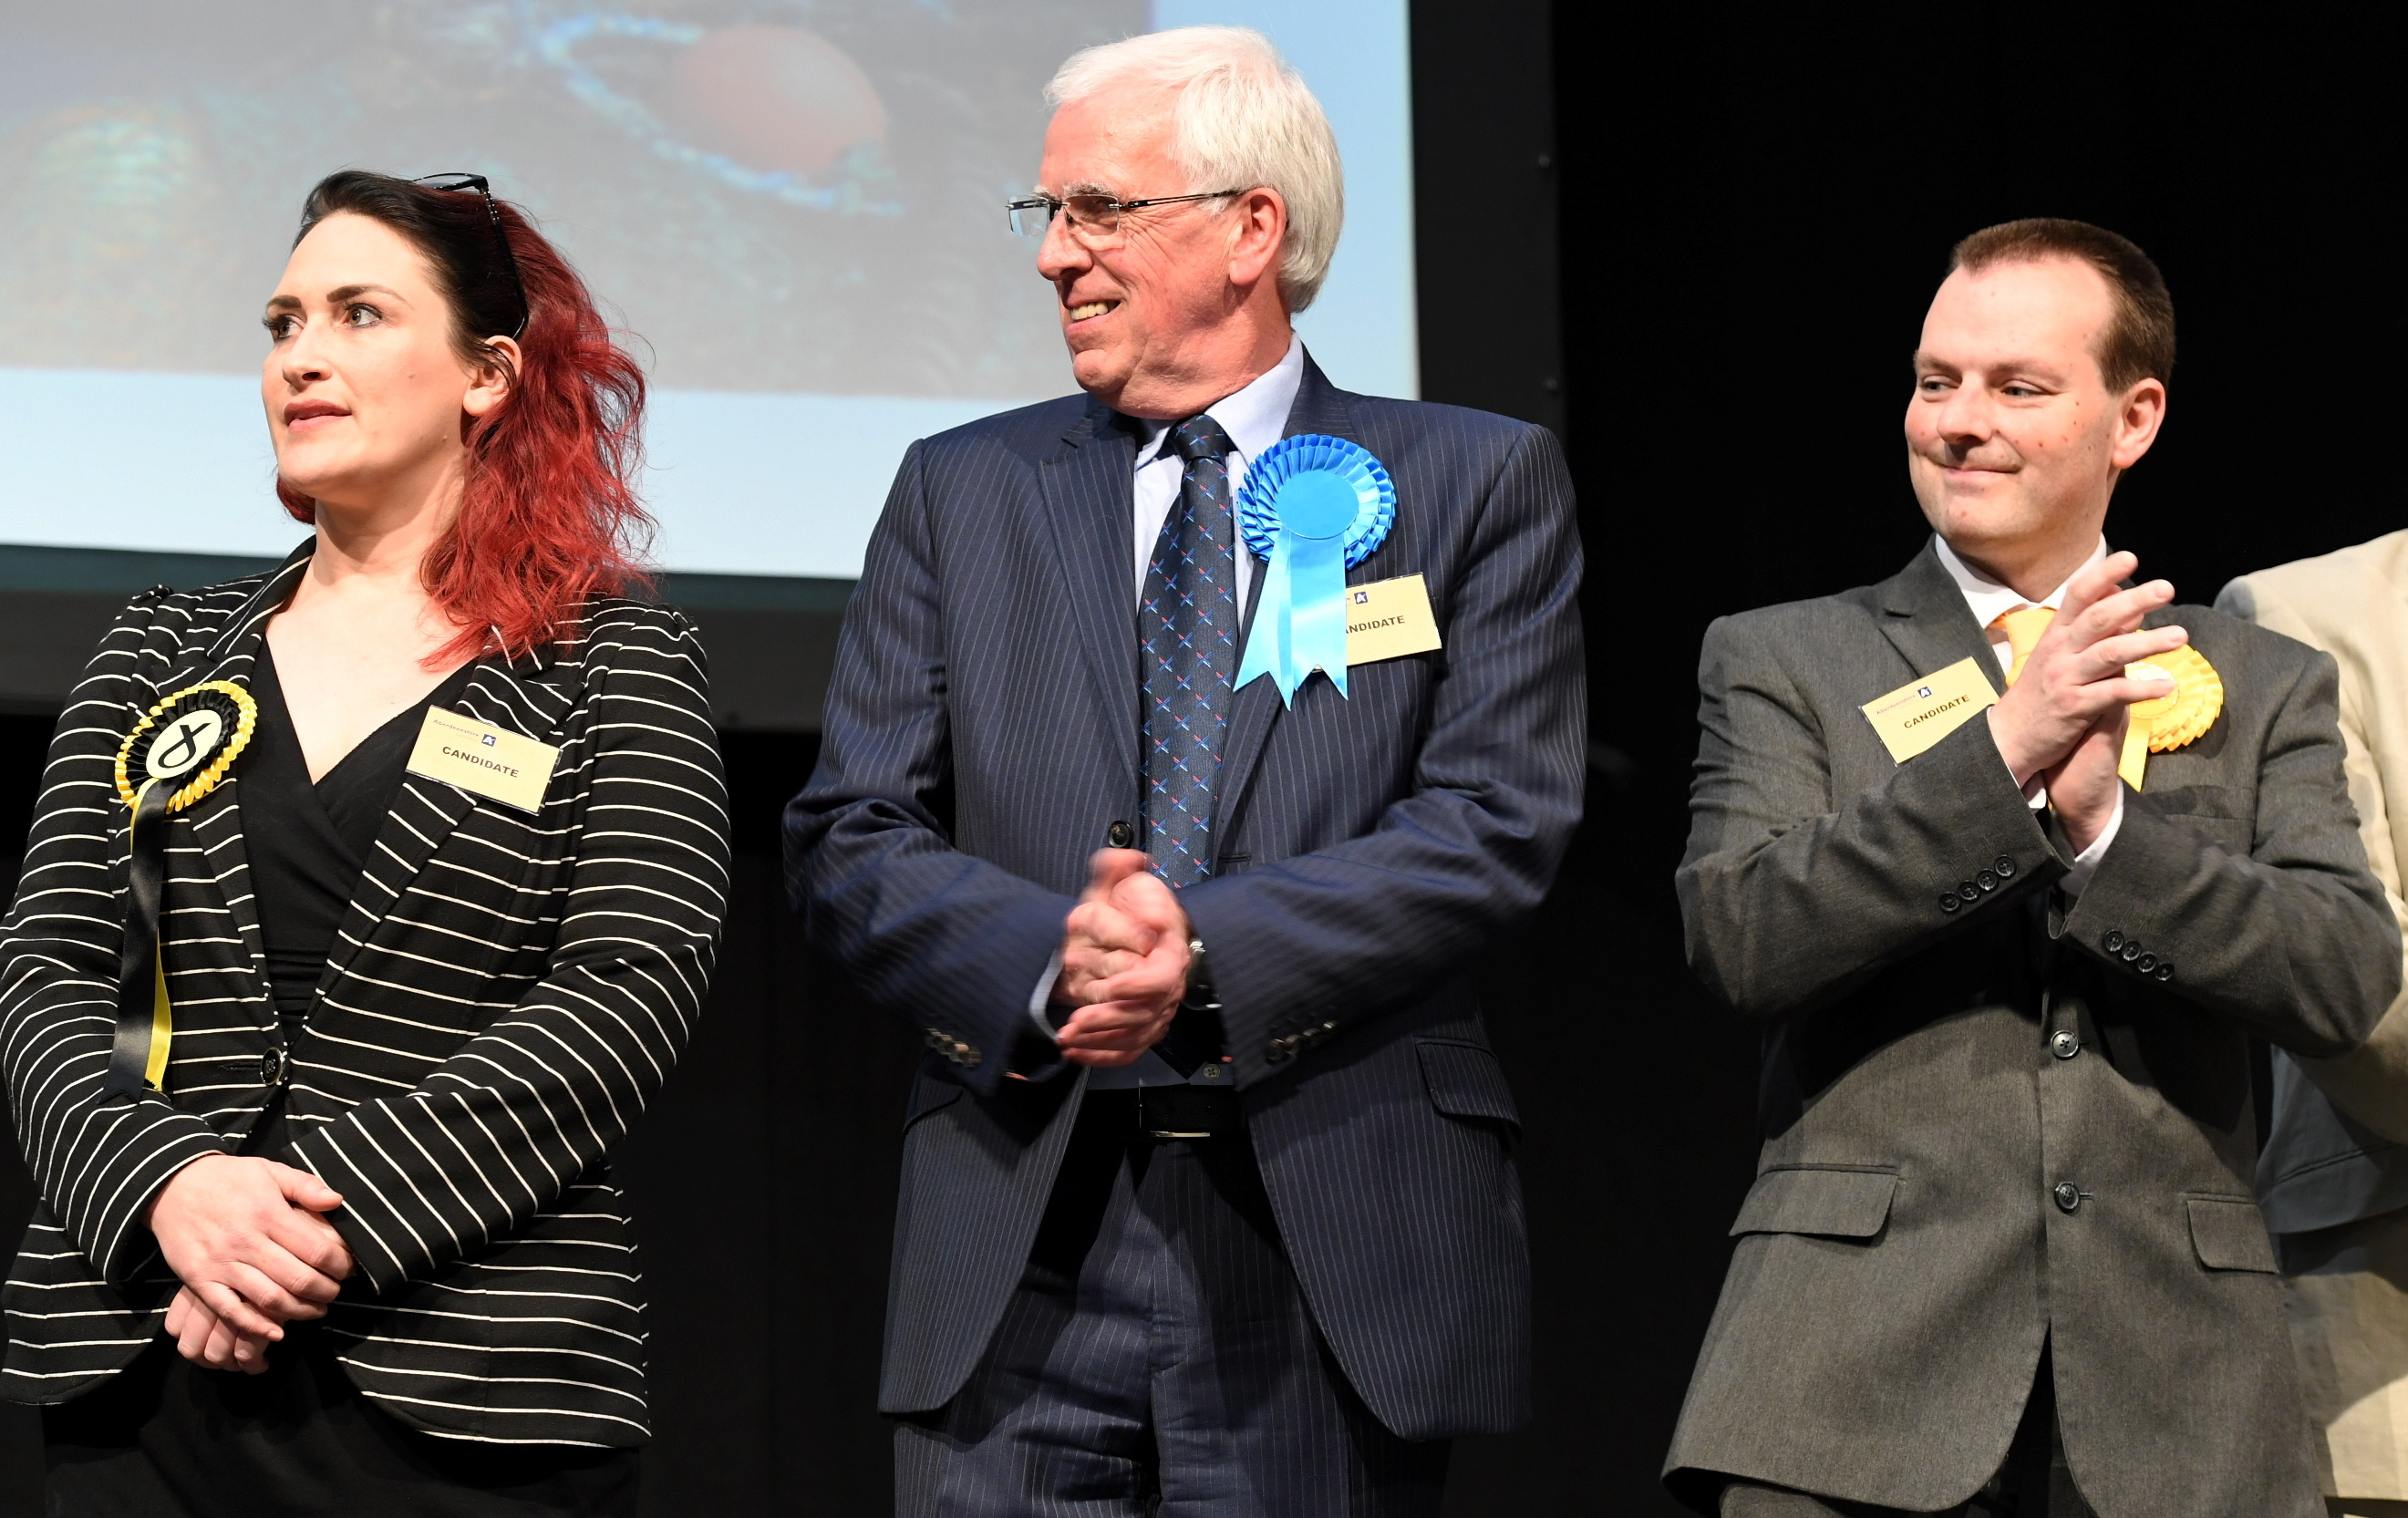 Jubilant: From left, Karen Adam, Jim Gifford and Andrew Hassan.  Picture by Chris Sumner.